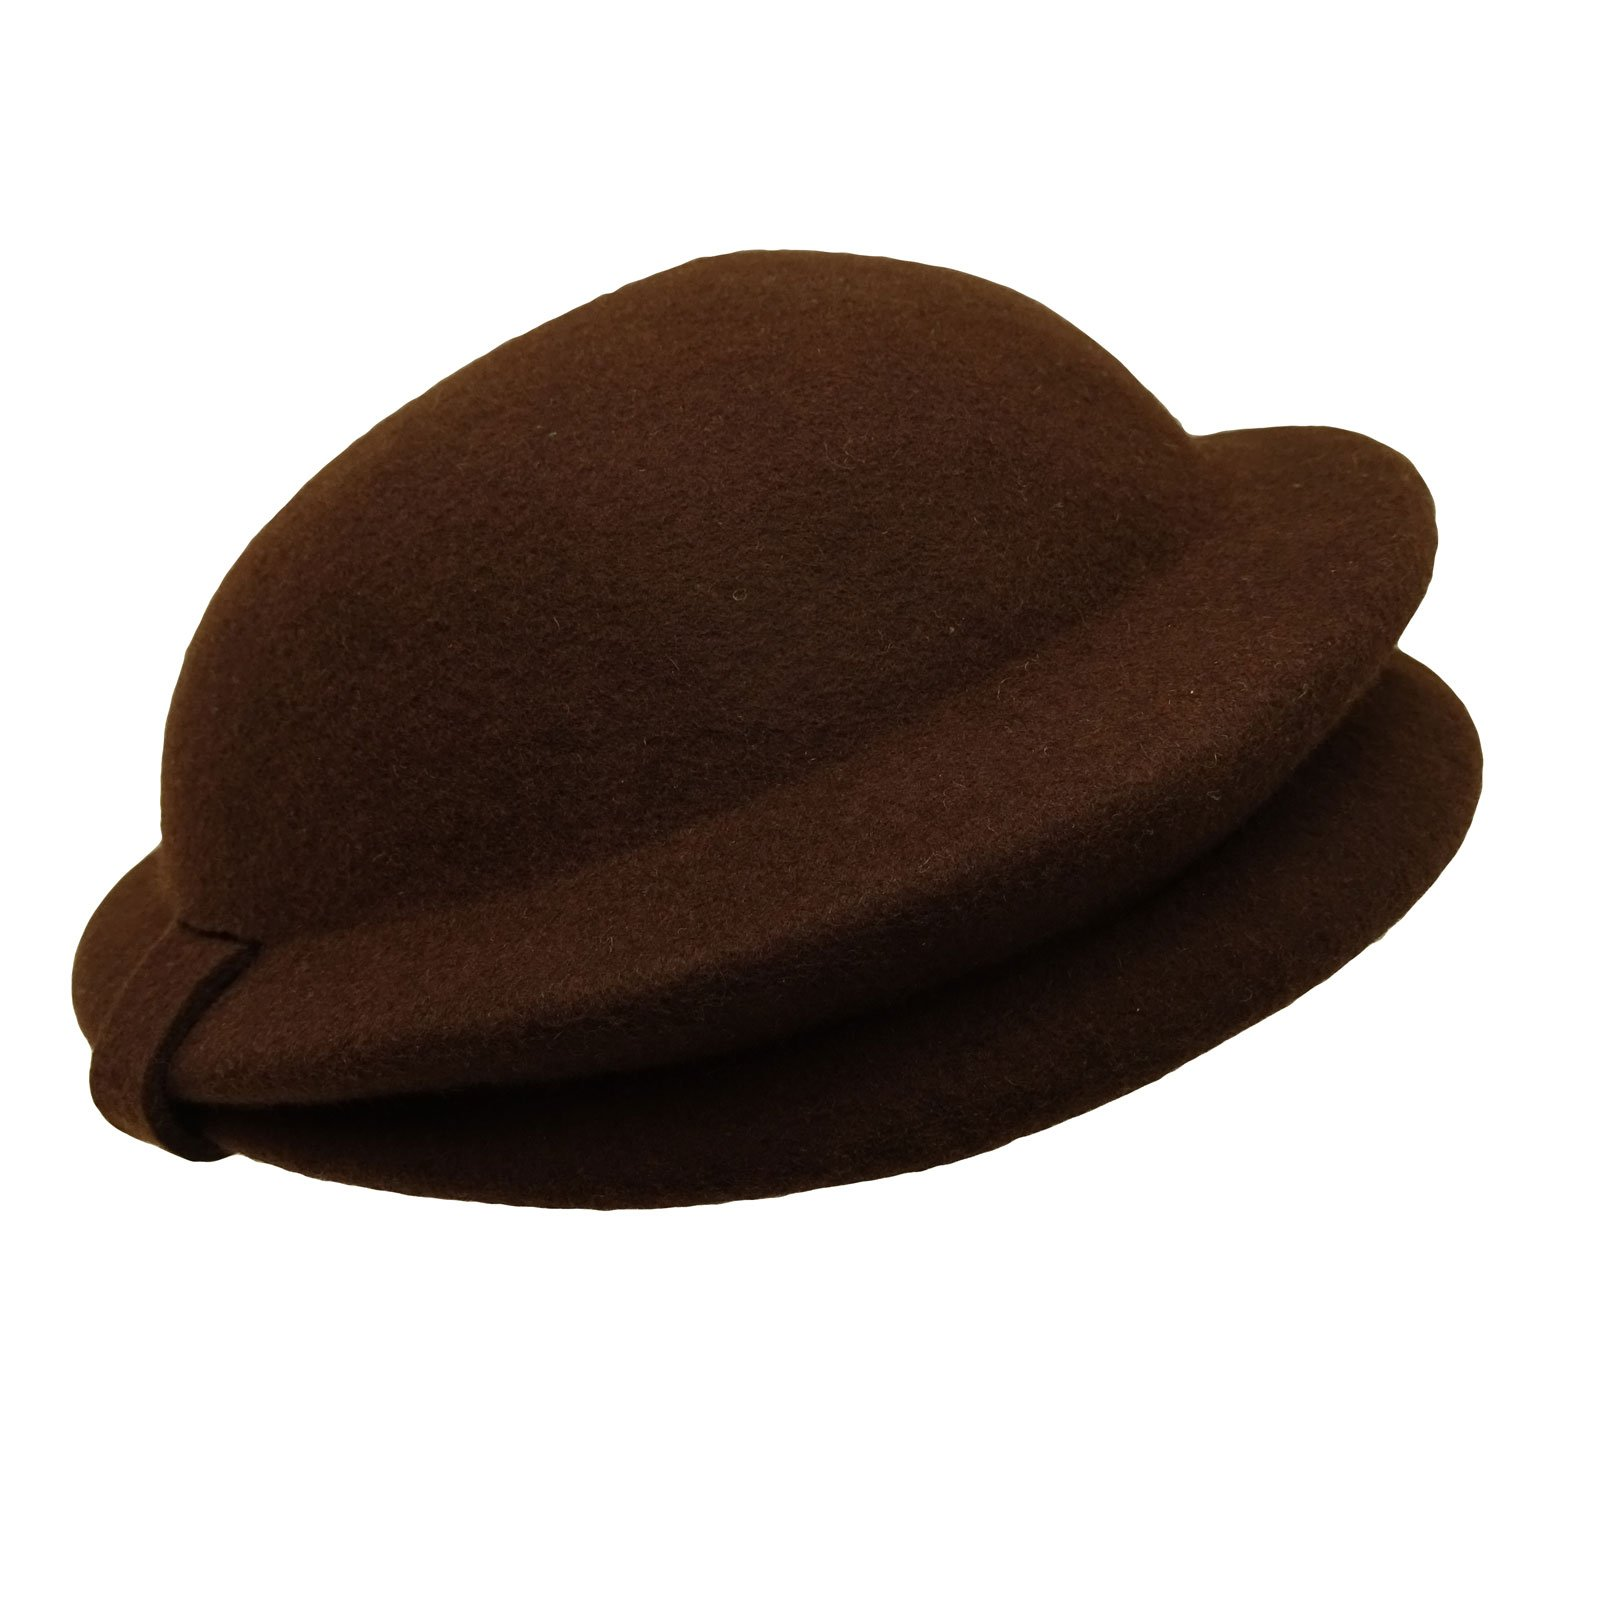 HATsanity Women's Vintage Wool Felt Folded Brim Pillbox Hat Brown